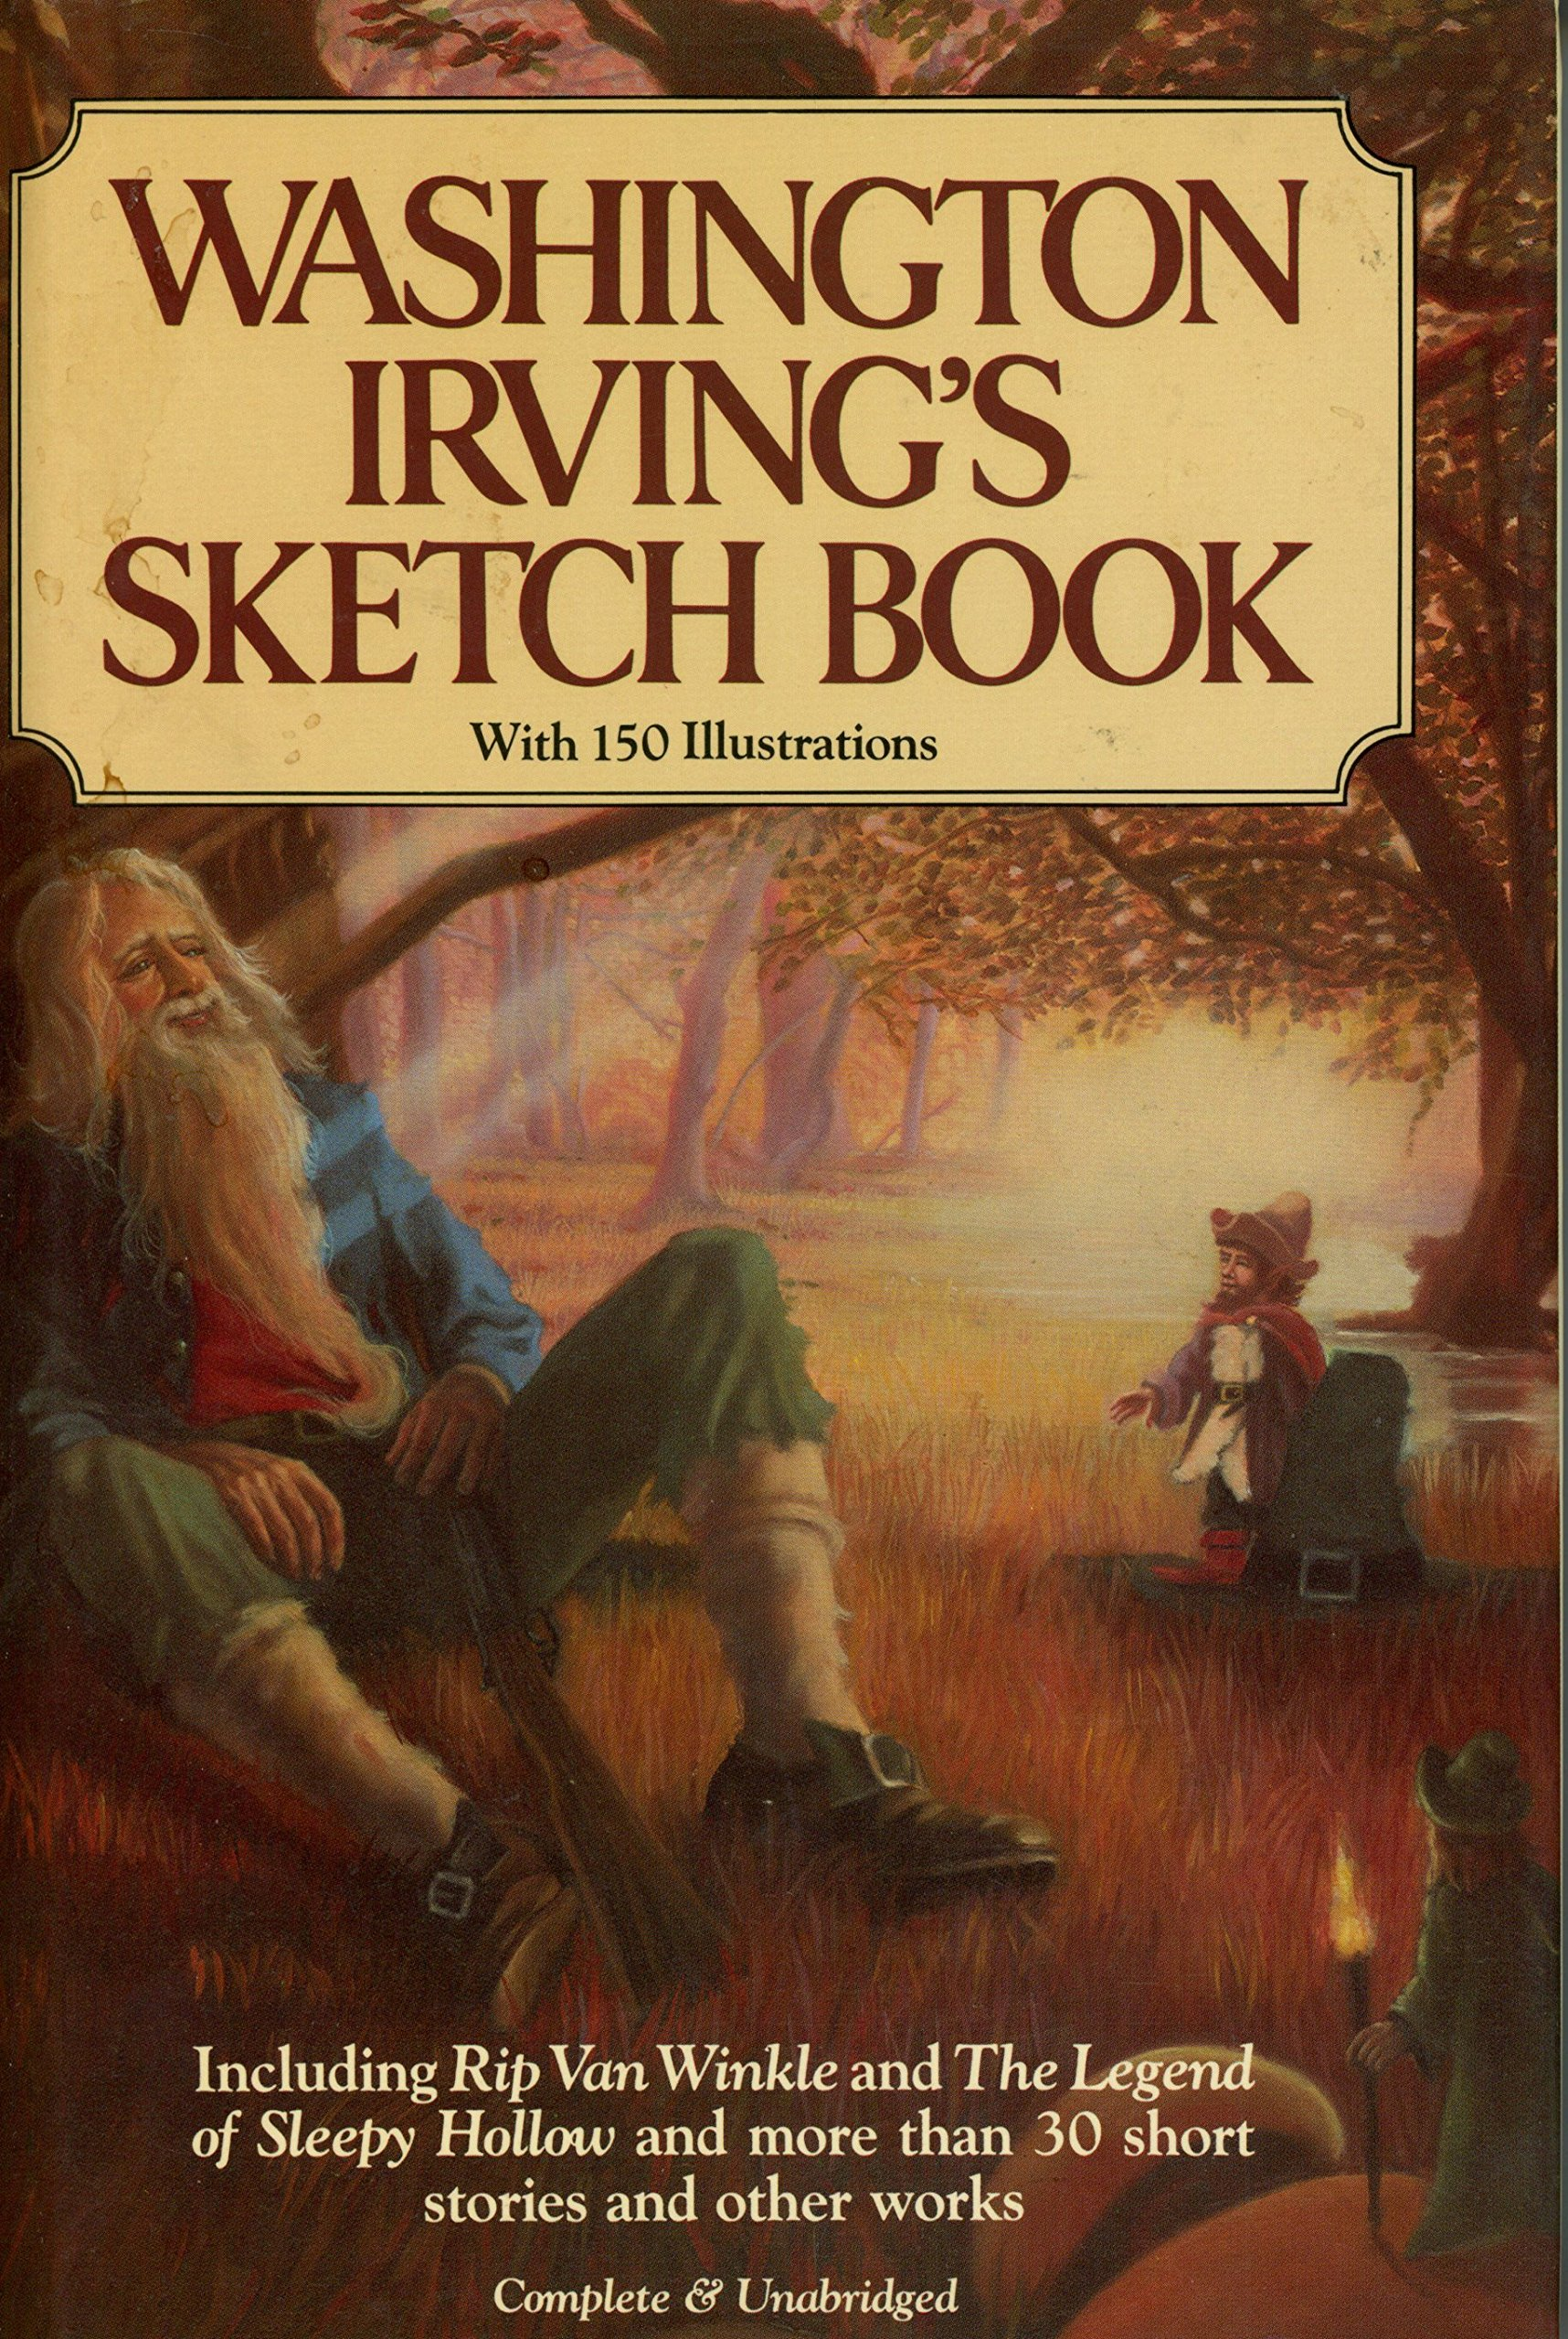 com washington irving s sketch book 9780517457528  com washington irving s sketch book 9780517457528 washington irving philip mcfarland books